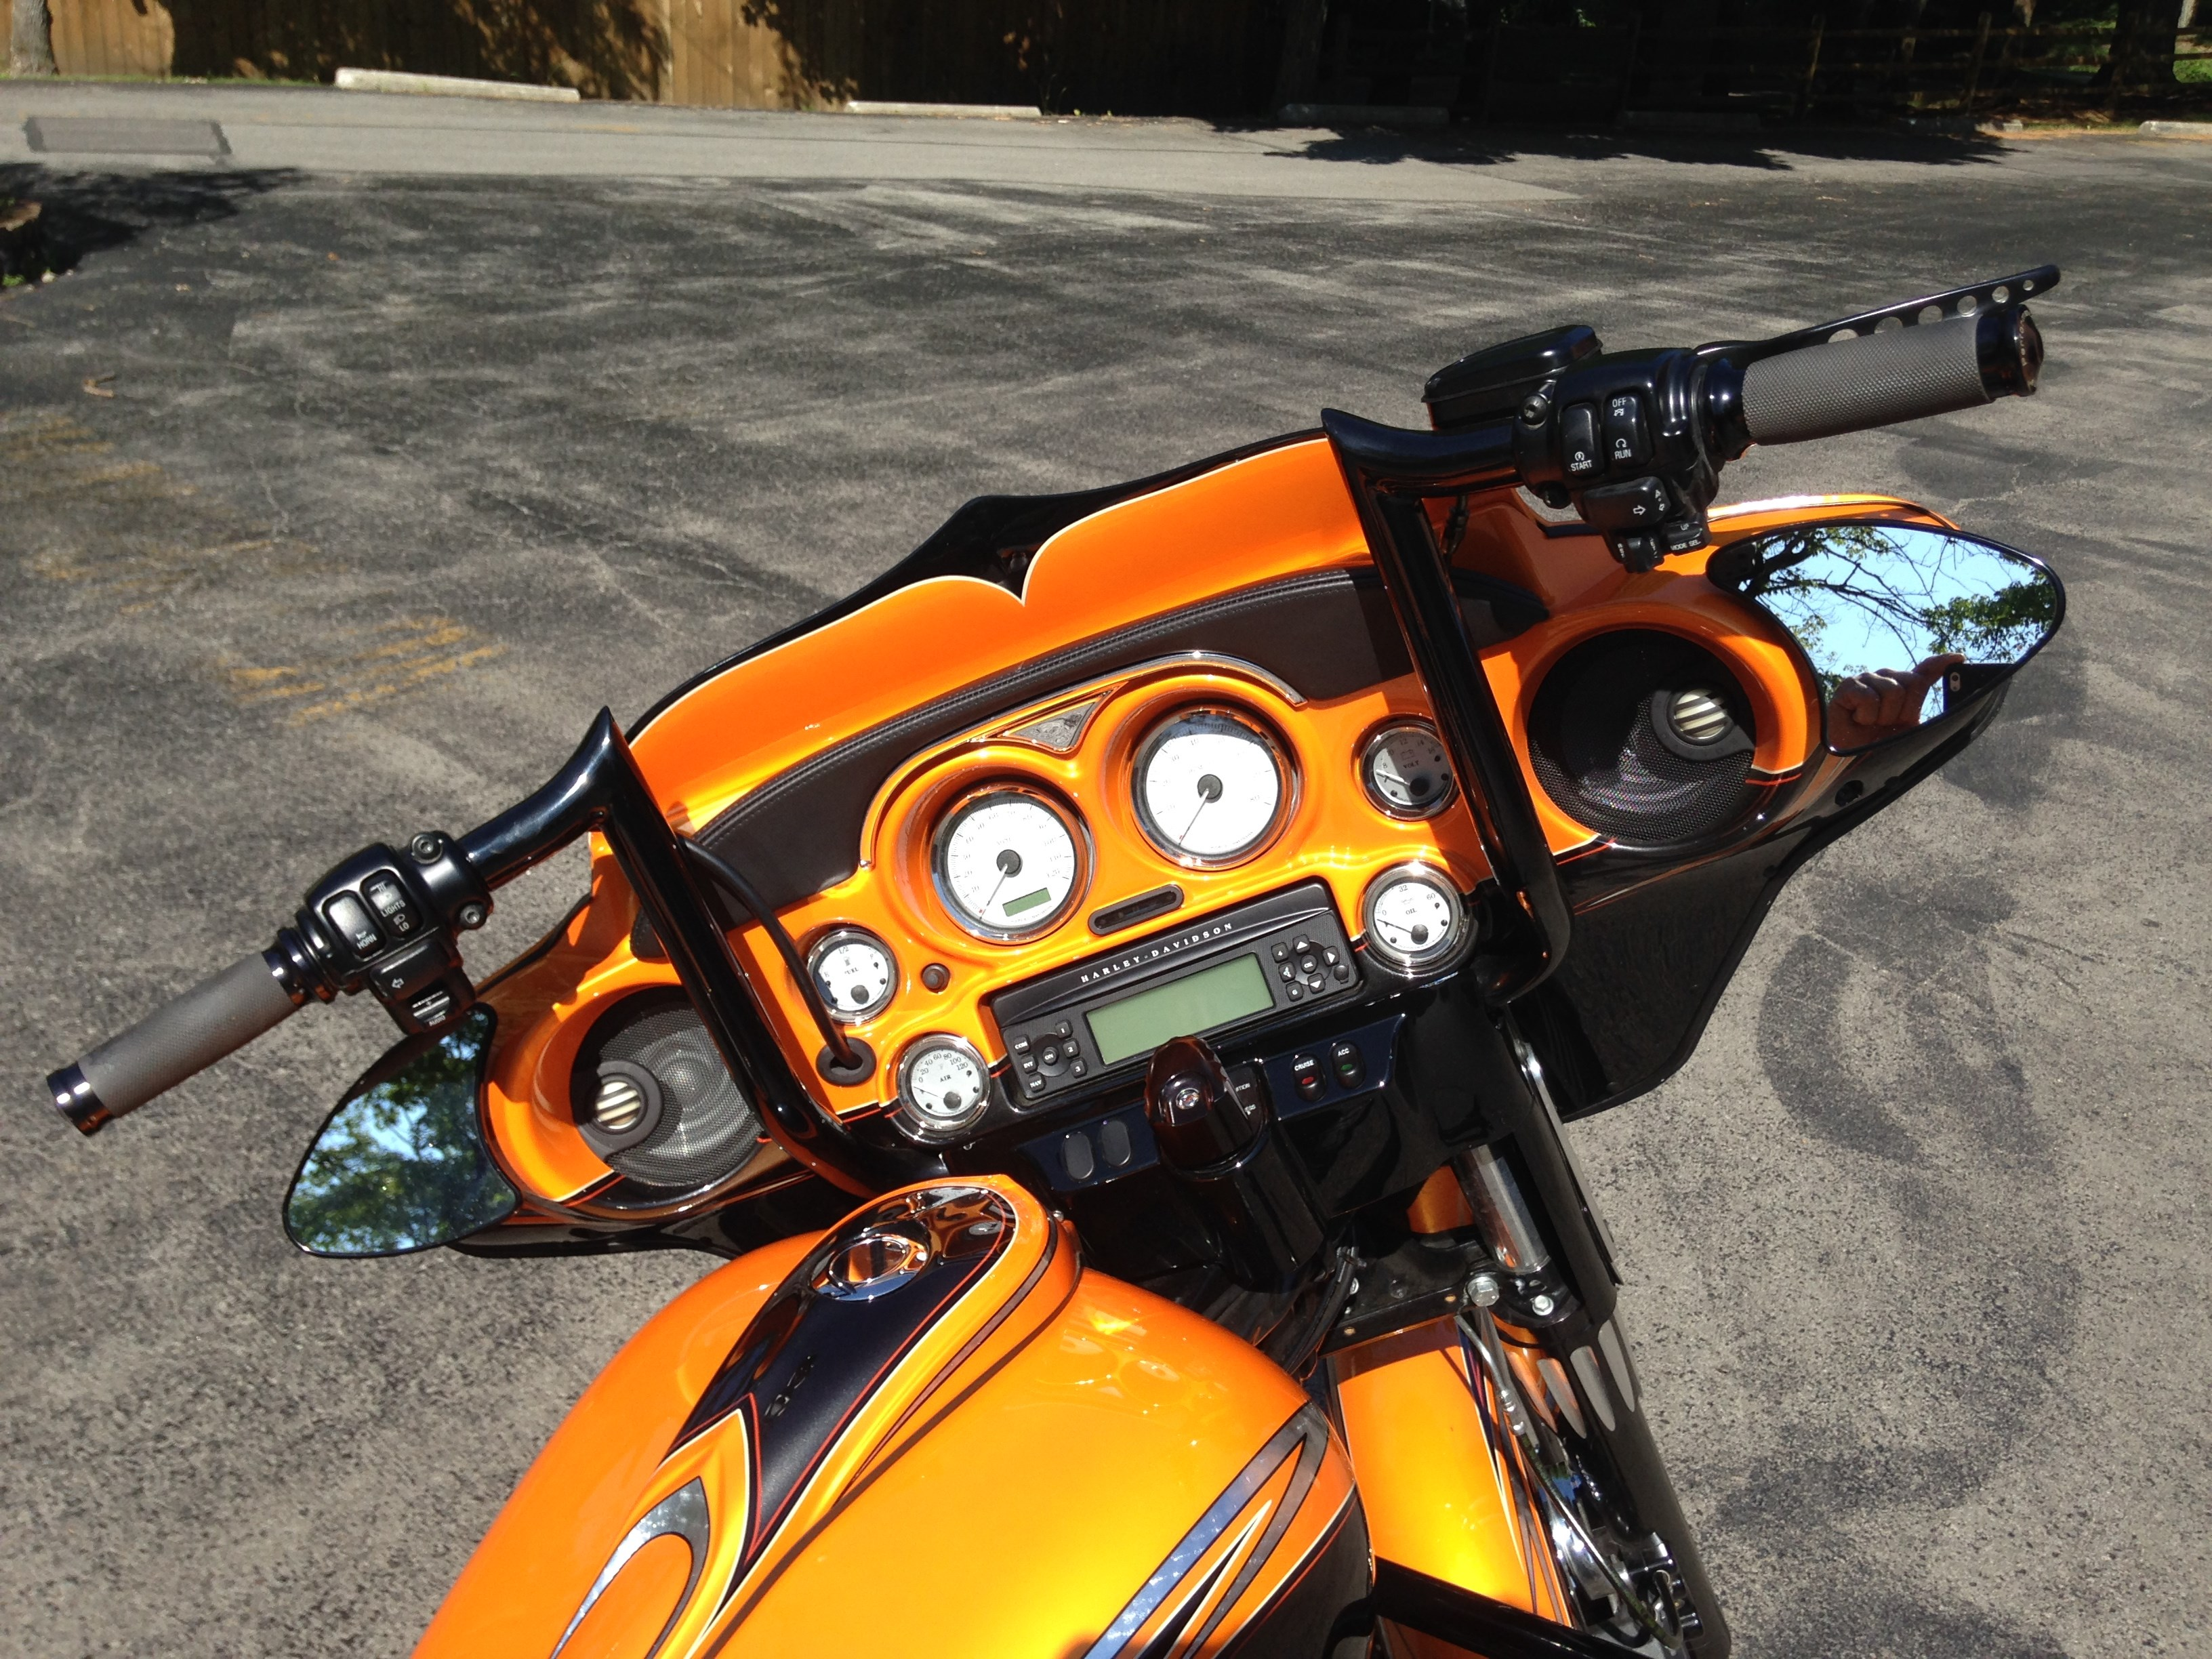 2011 Harley Davidson 174 Flhx Street Glide 174 Orange And Black